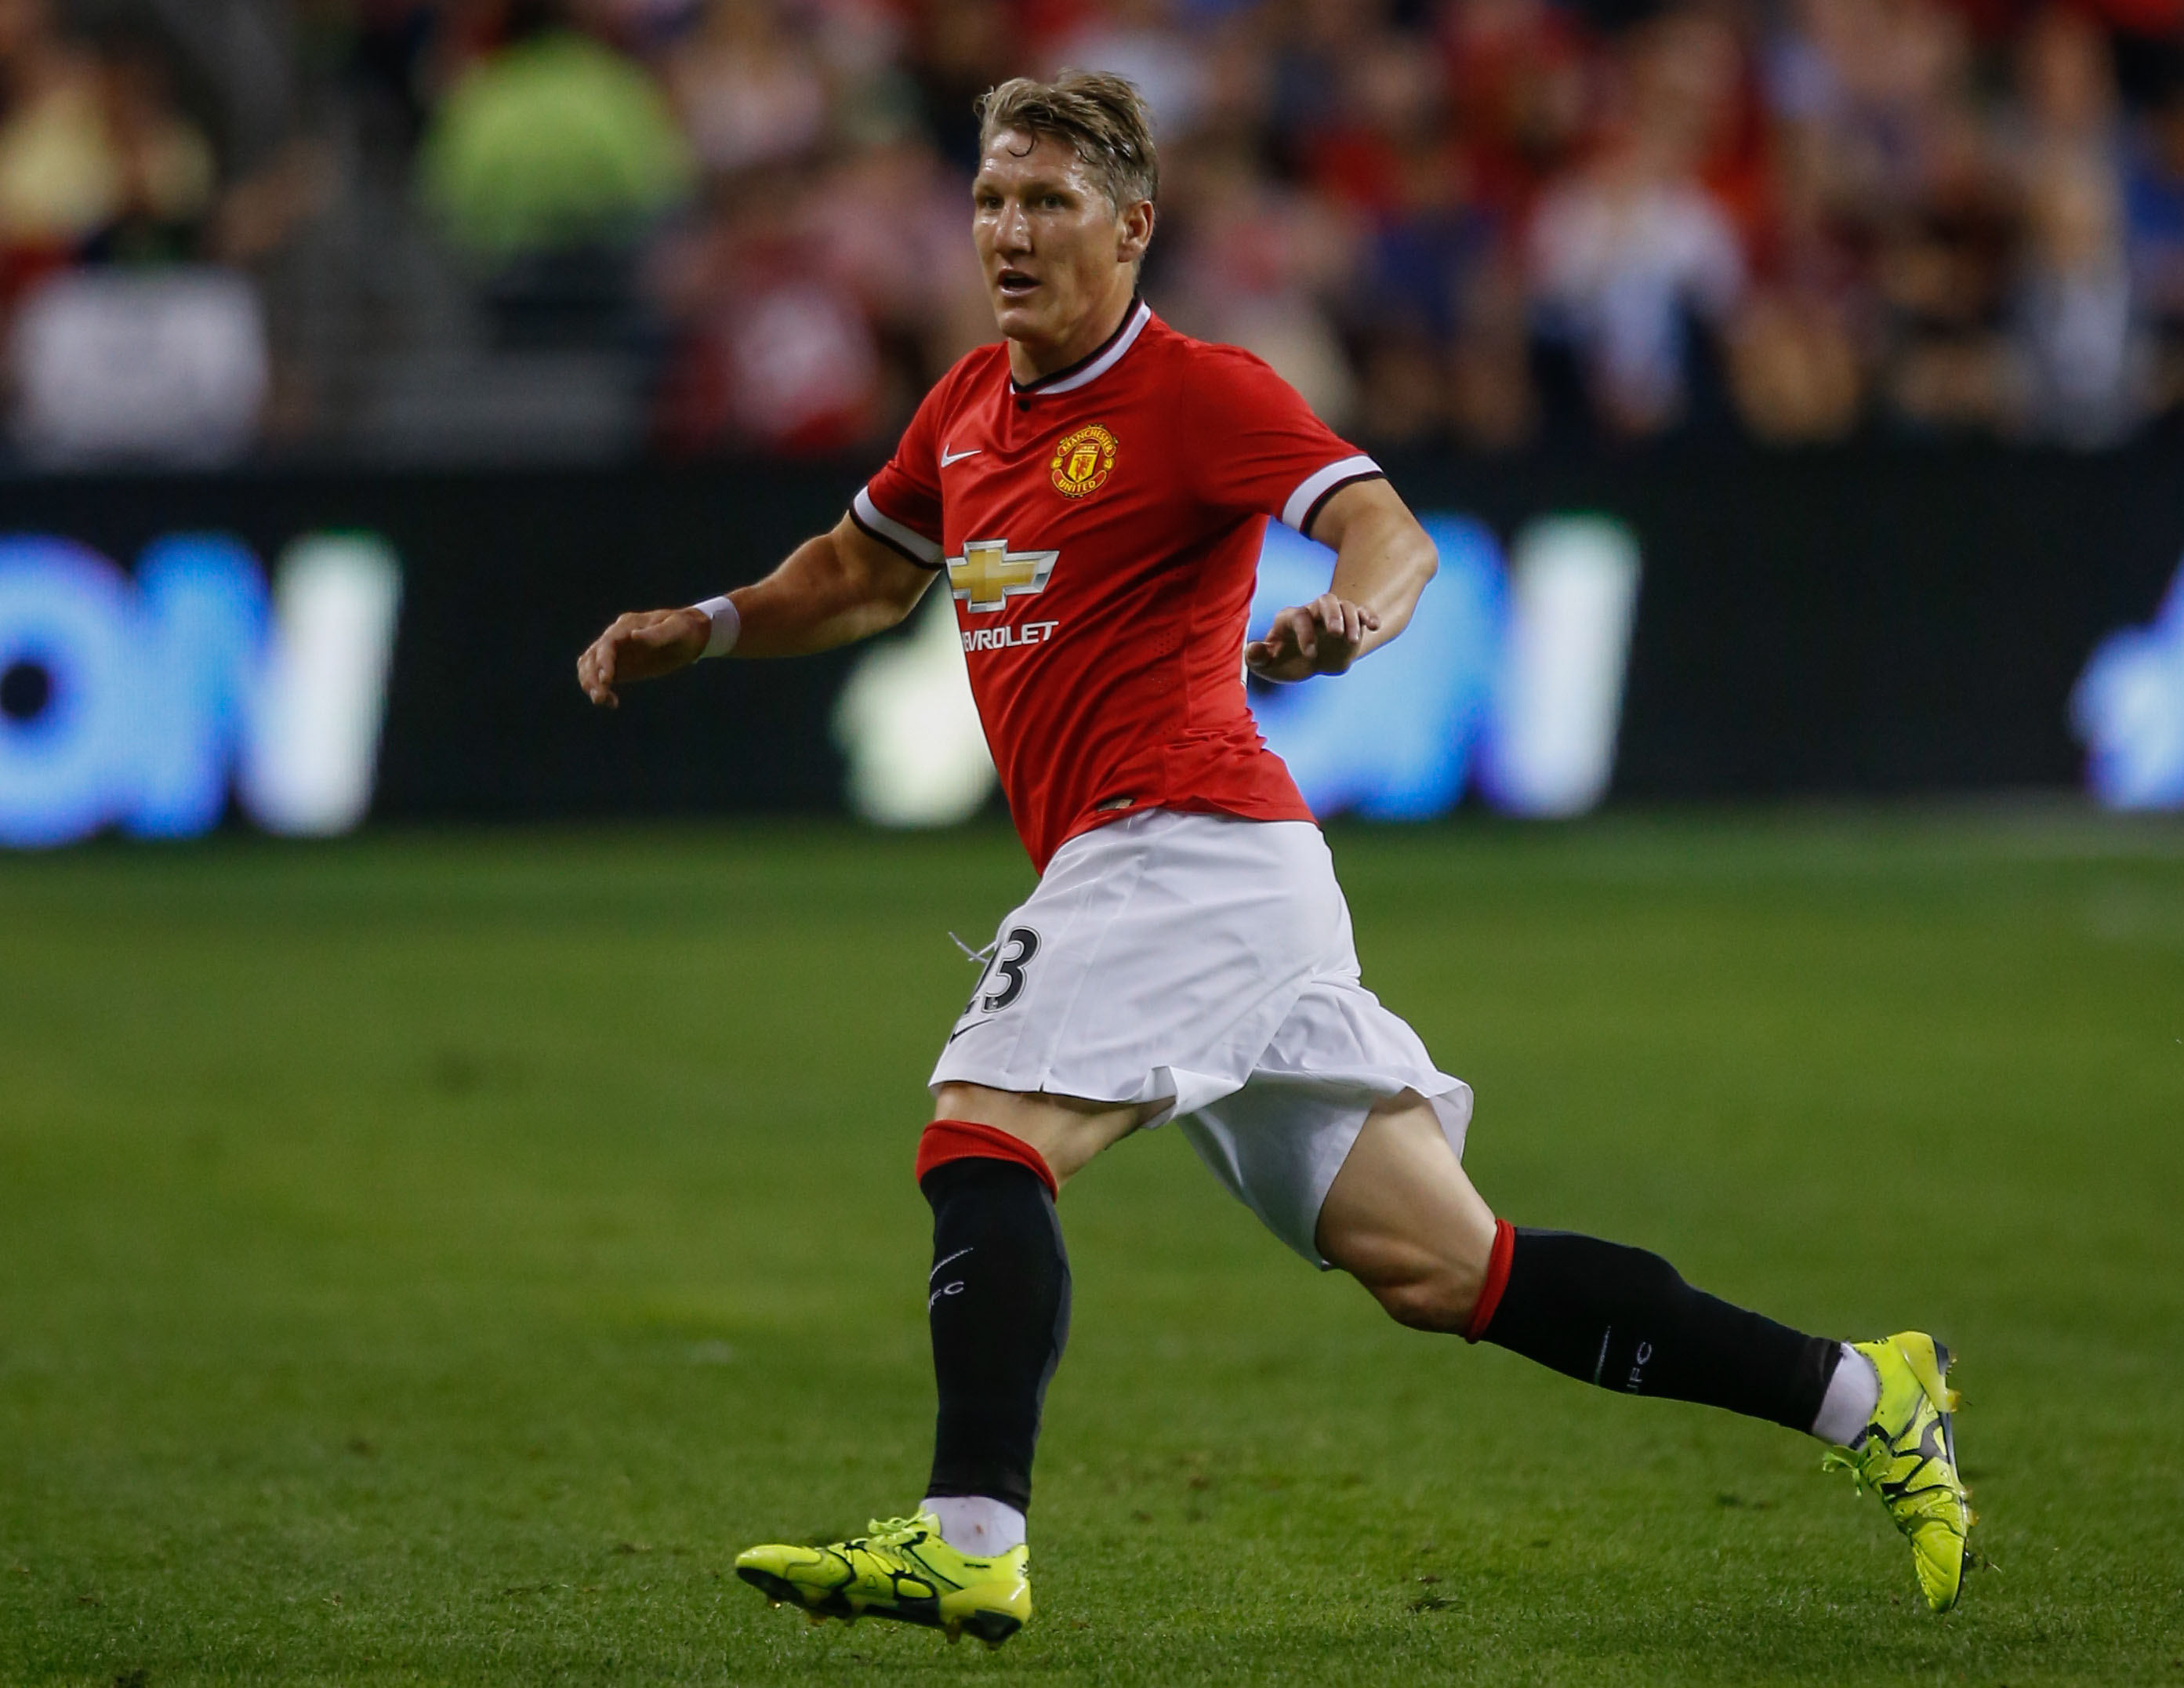 International Champions Cup 2015 - Club America v Manchester United